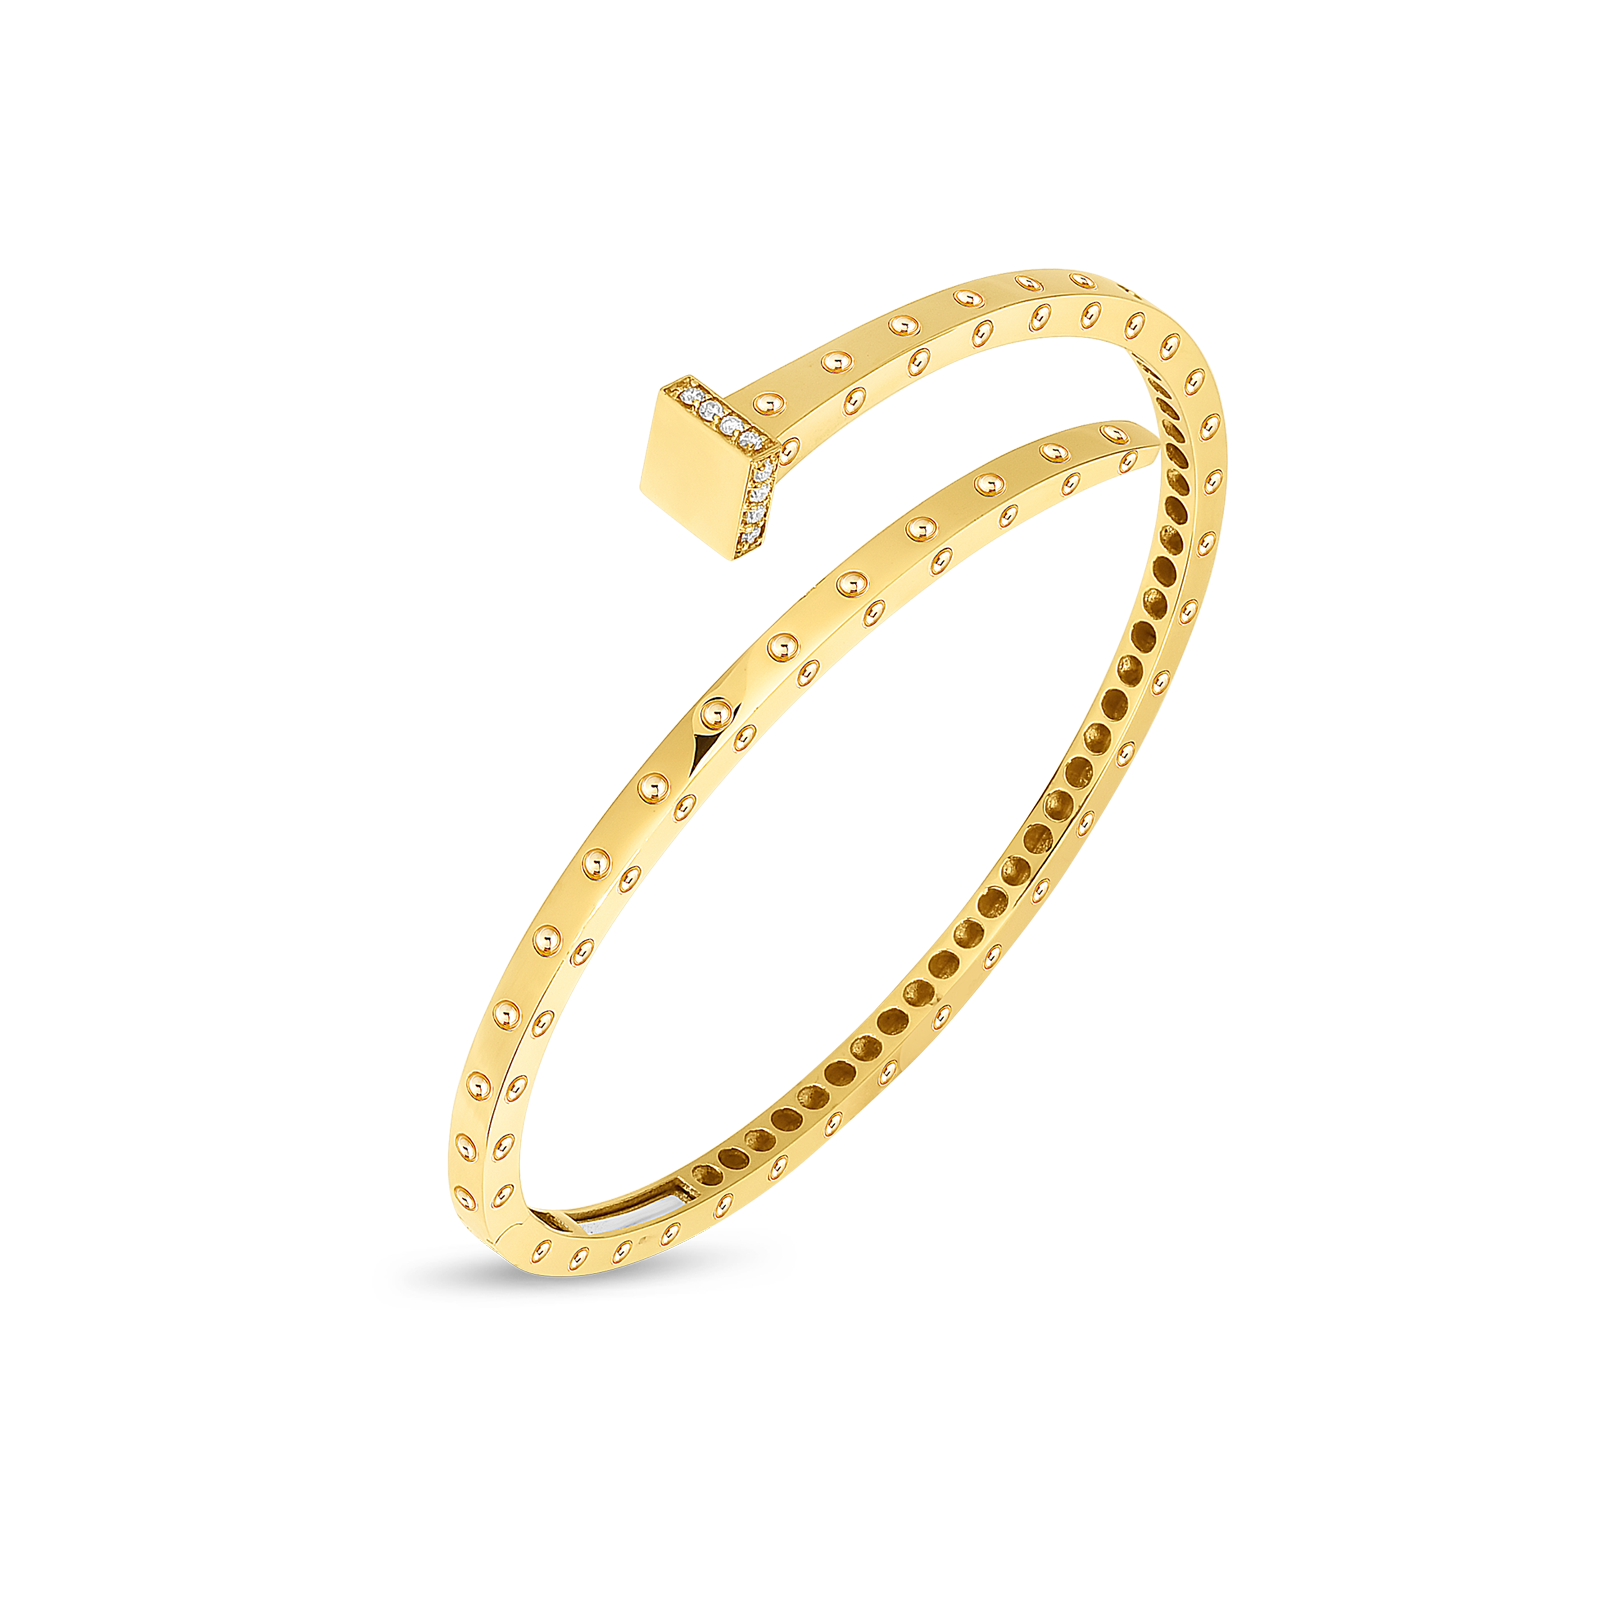 A rail spike bracelet made of gold by Roberto Coin Santa Fe Jewelry.